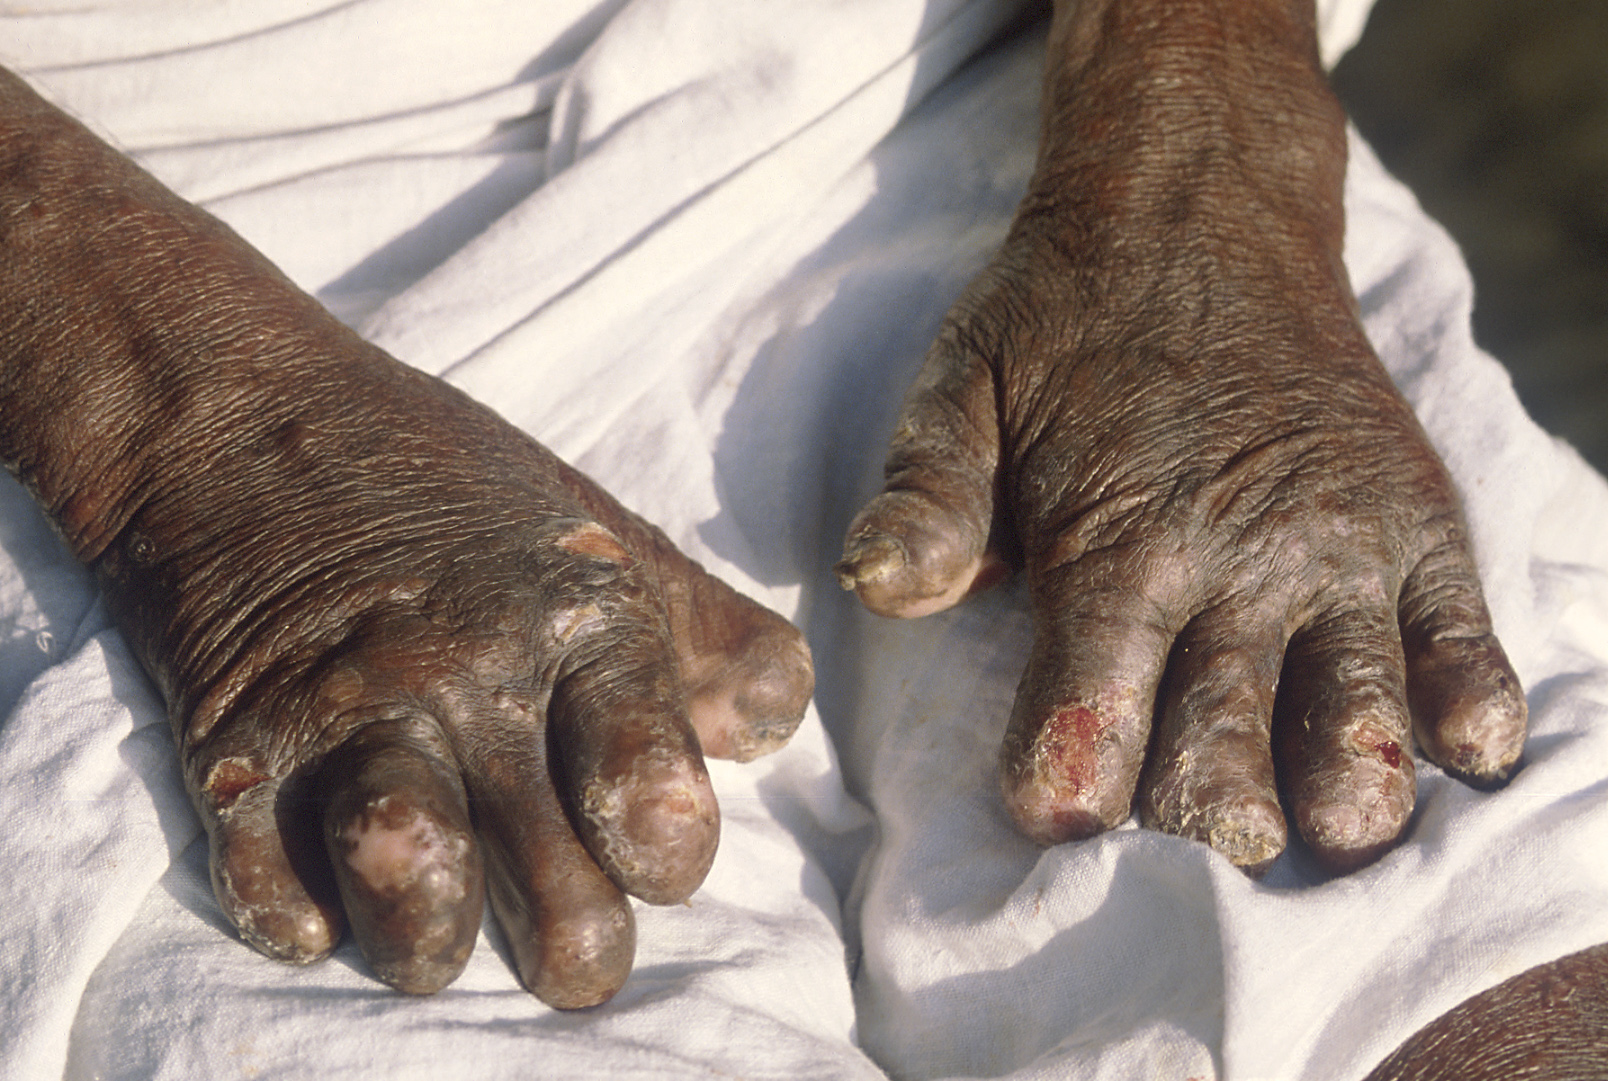 Leprosy-inflicted deformities on the hands. (Source: Wikimedia Commons)